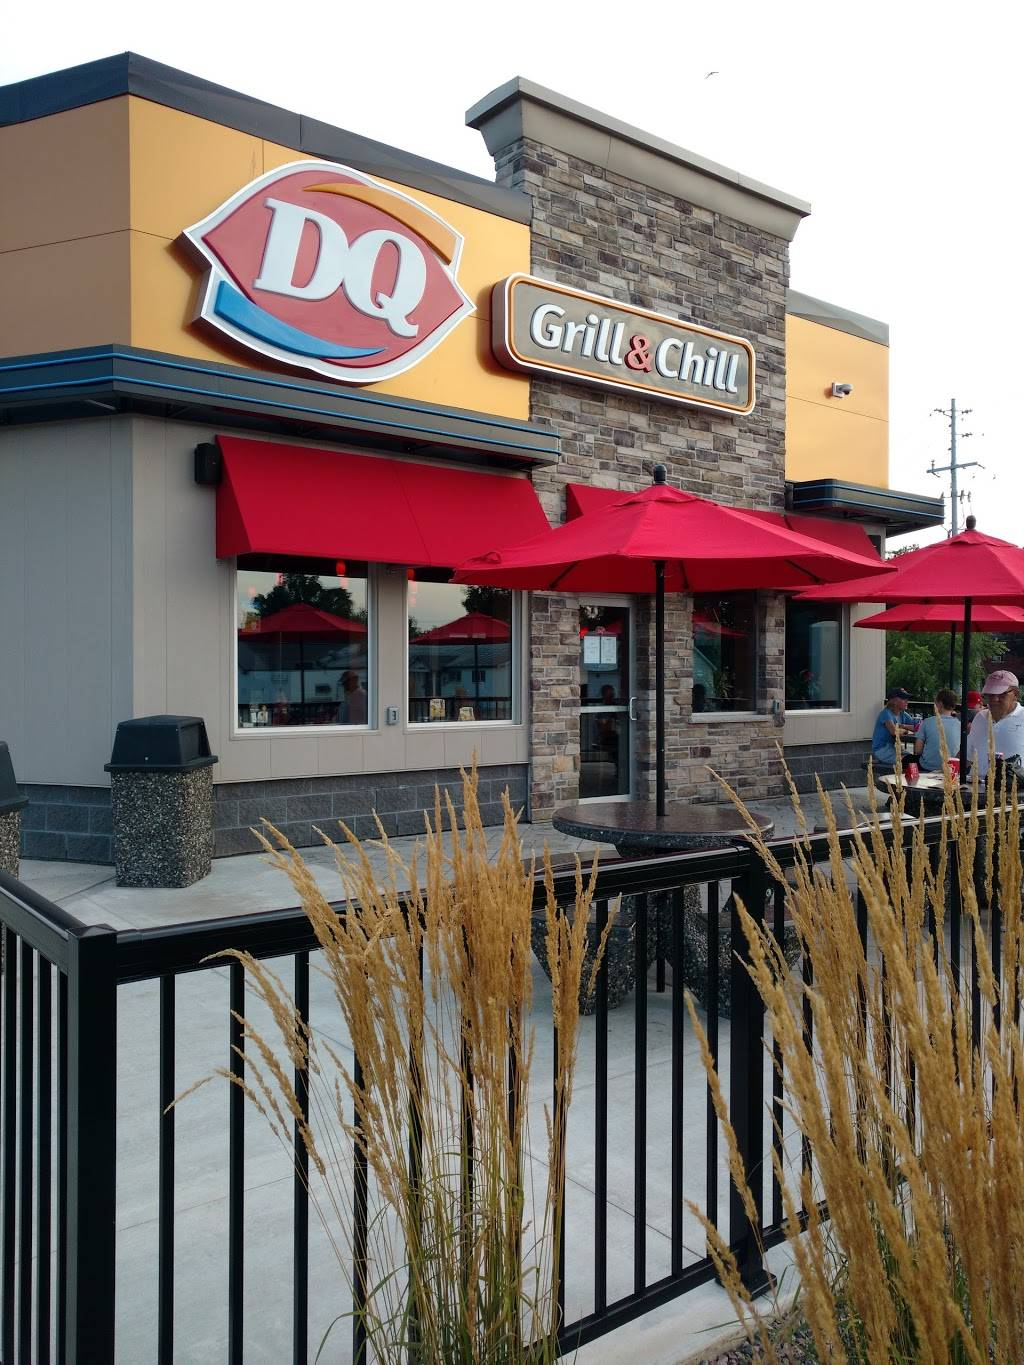 Dairy Queen Grill & Chill | restaurant | 150 McNab St, Walkerton, ON N0G 2V0, Canada | 5195073742 OR +1 519-507-3742